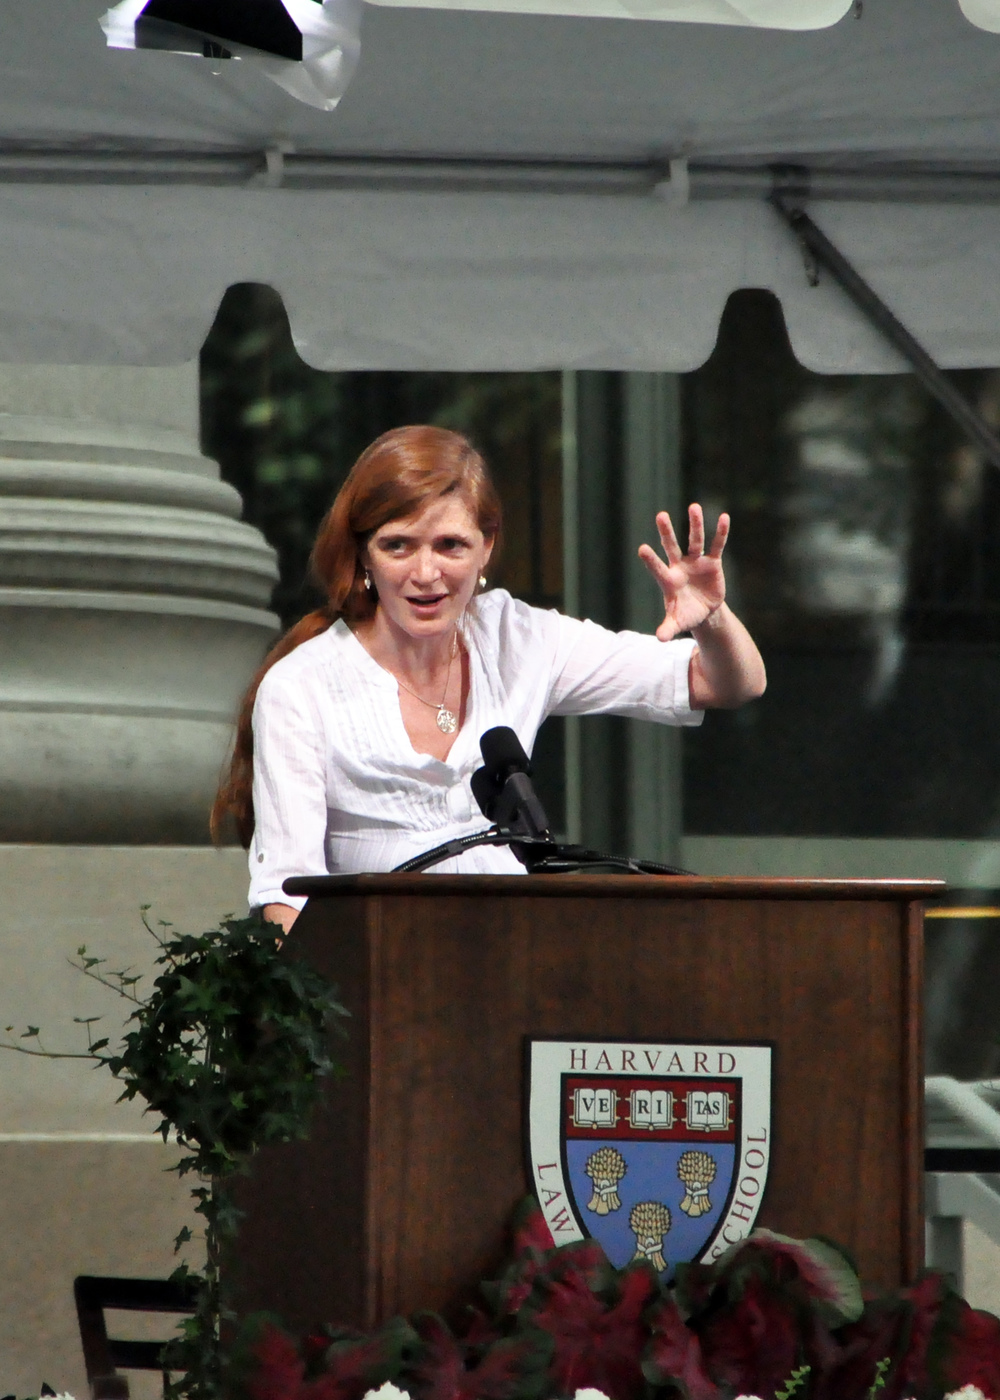 Click photo to download. Samantha Power speaks at Harvard Law School in 2010. Credit: Chensiyuan/Wikimedia Commons.